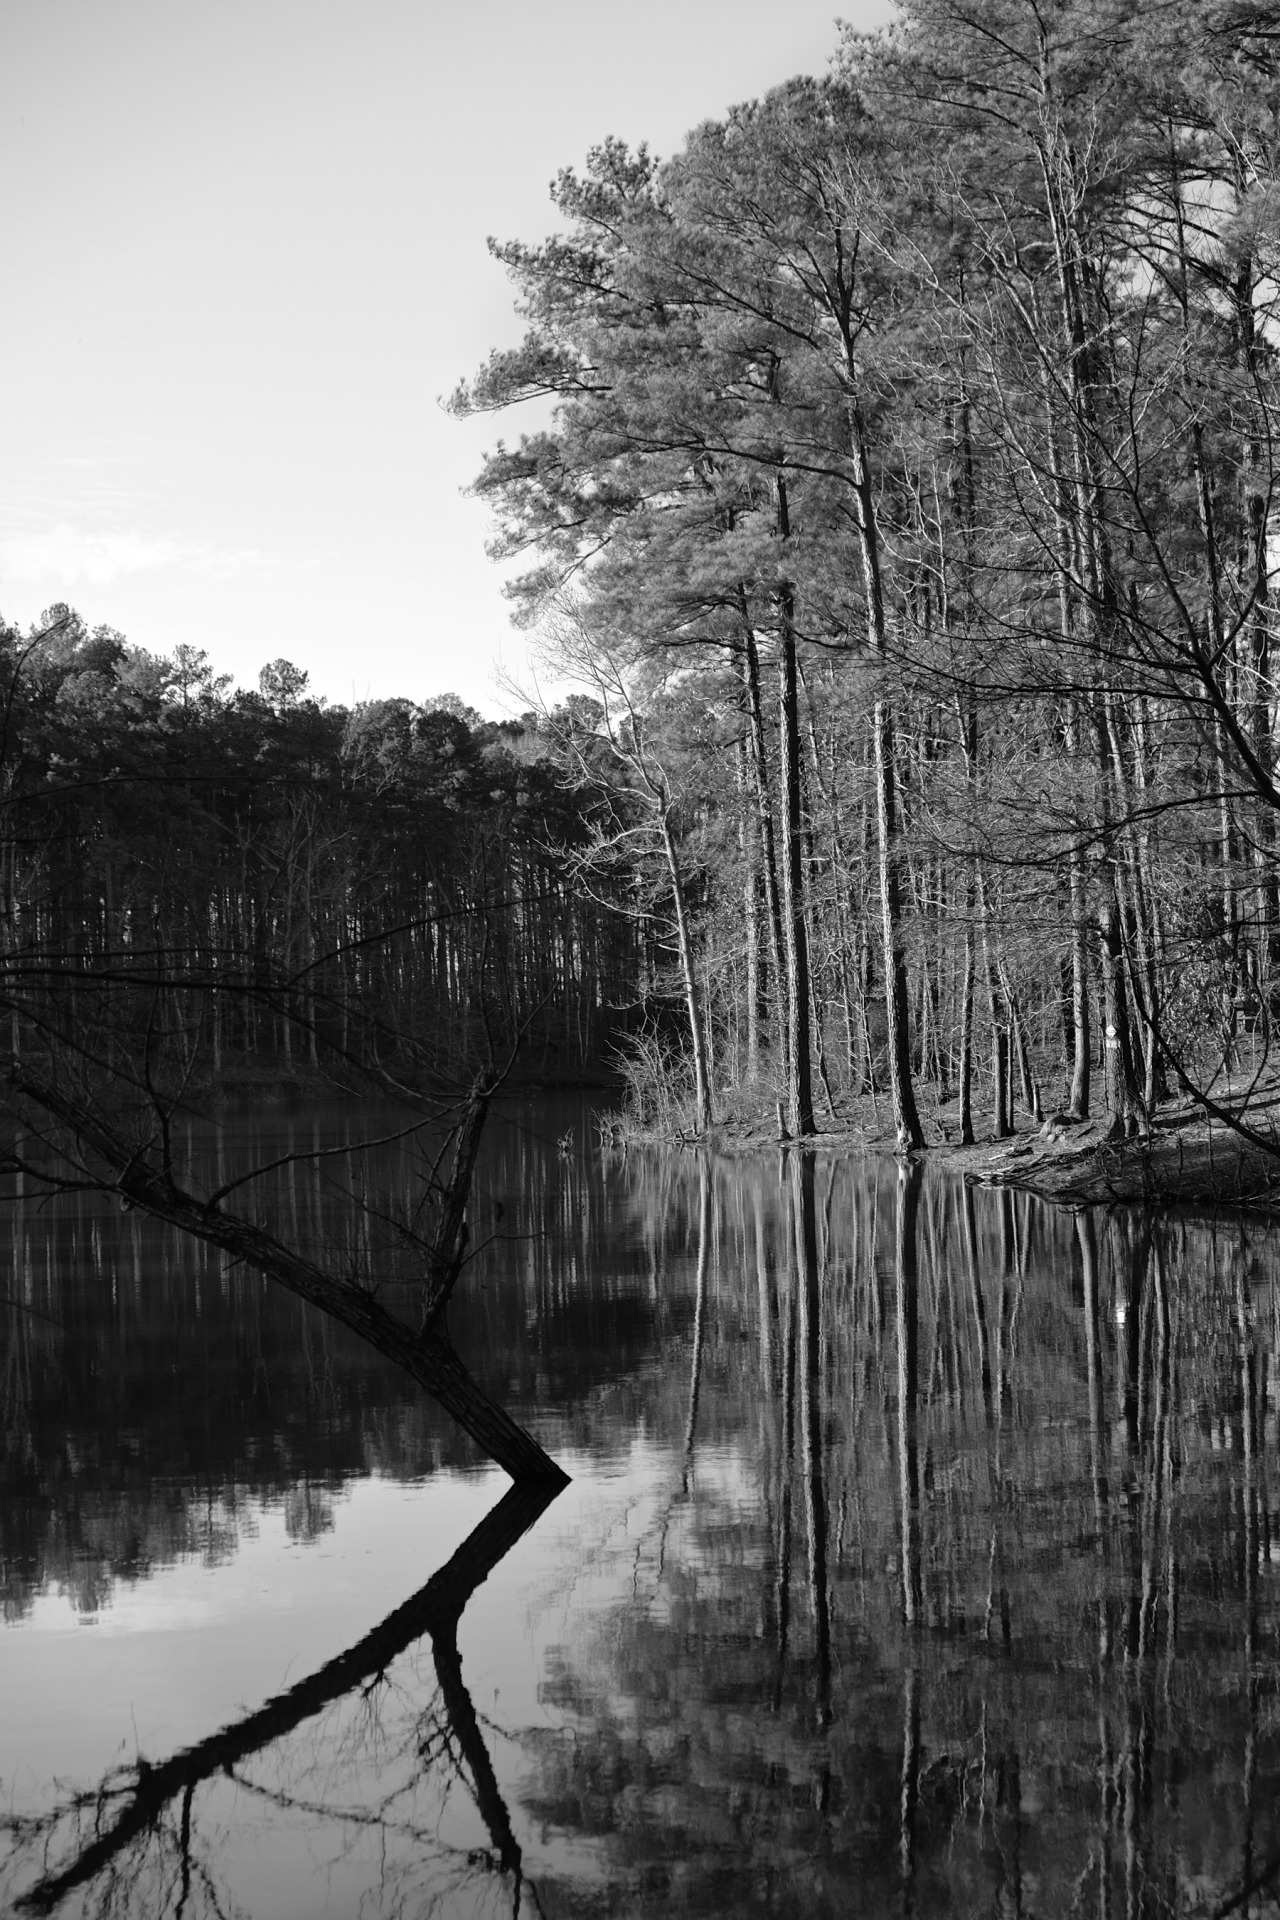 black and white scene of a forest up to the edge of a lake